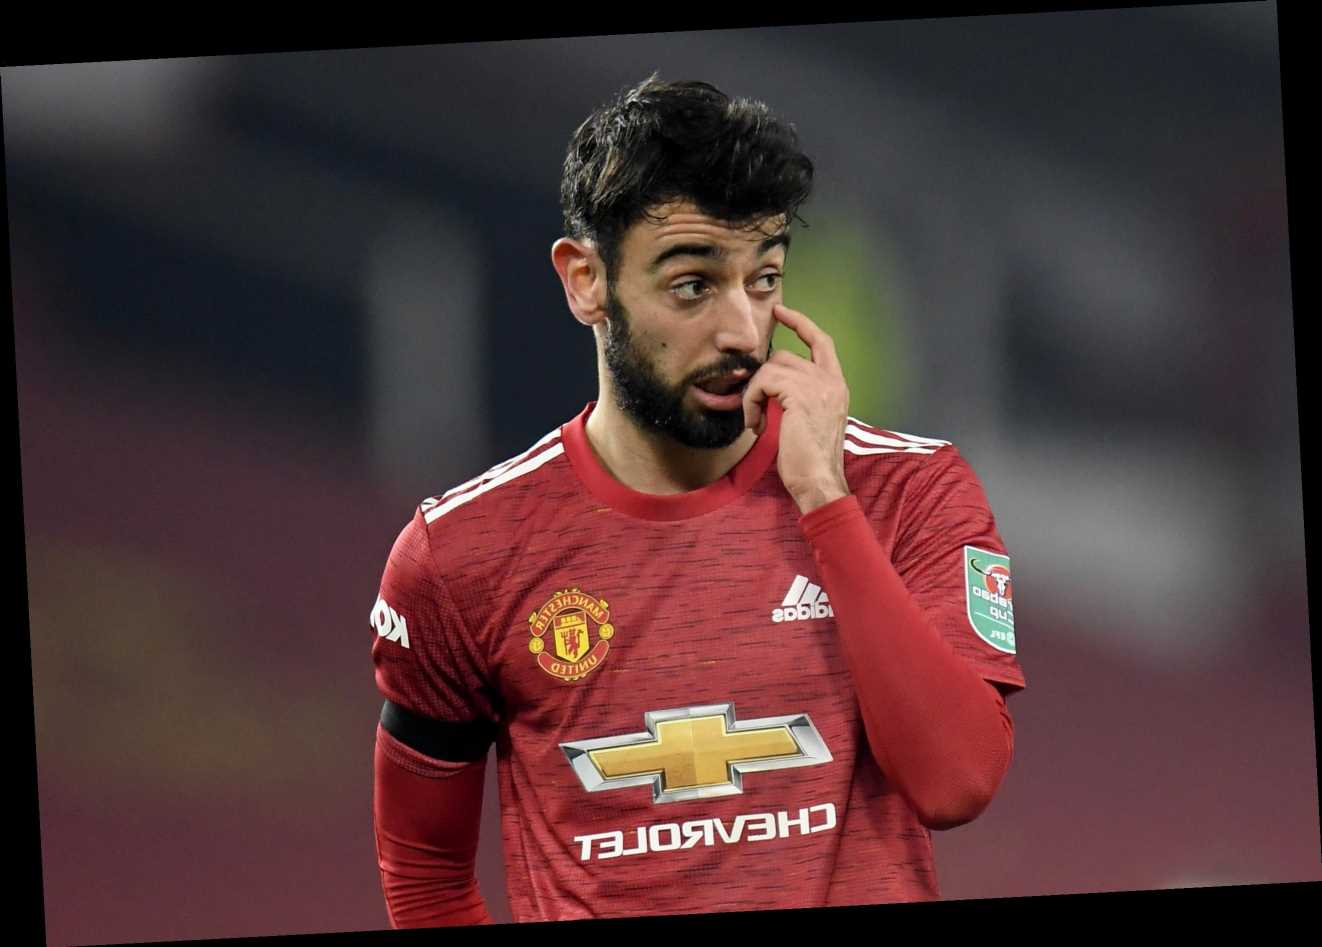 Bruno Fernandes cannot be compared to Man Utd legends like Eric Cantona… he didn't 'turn up' vs City, says Roy Keane